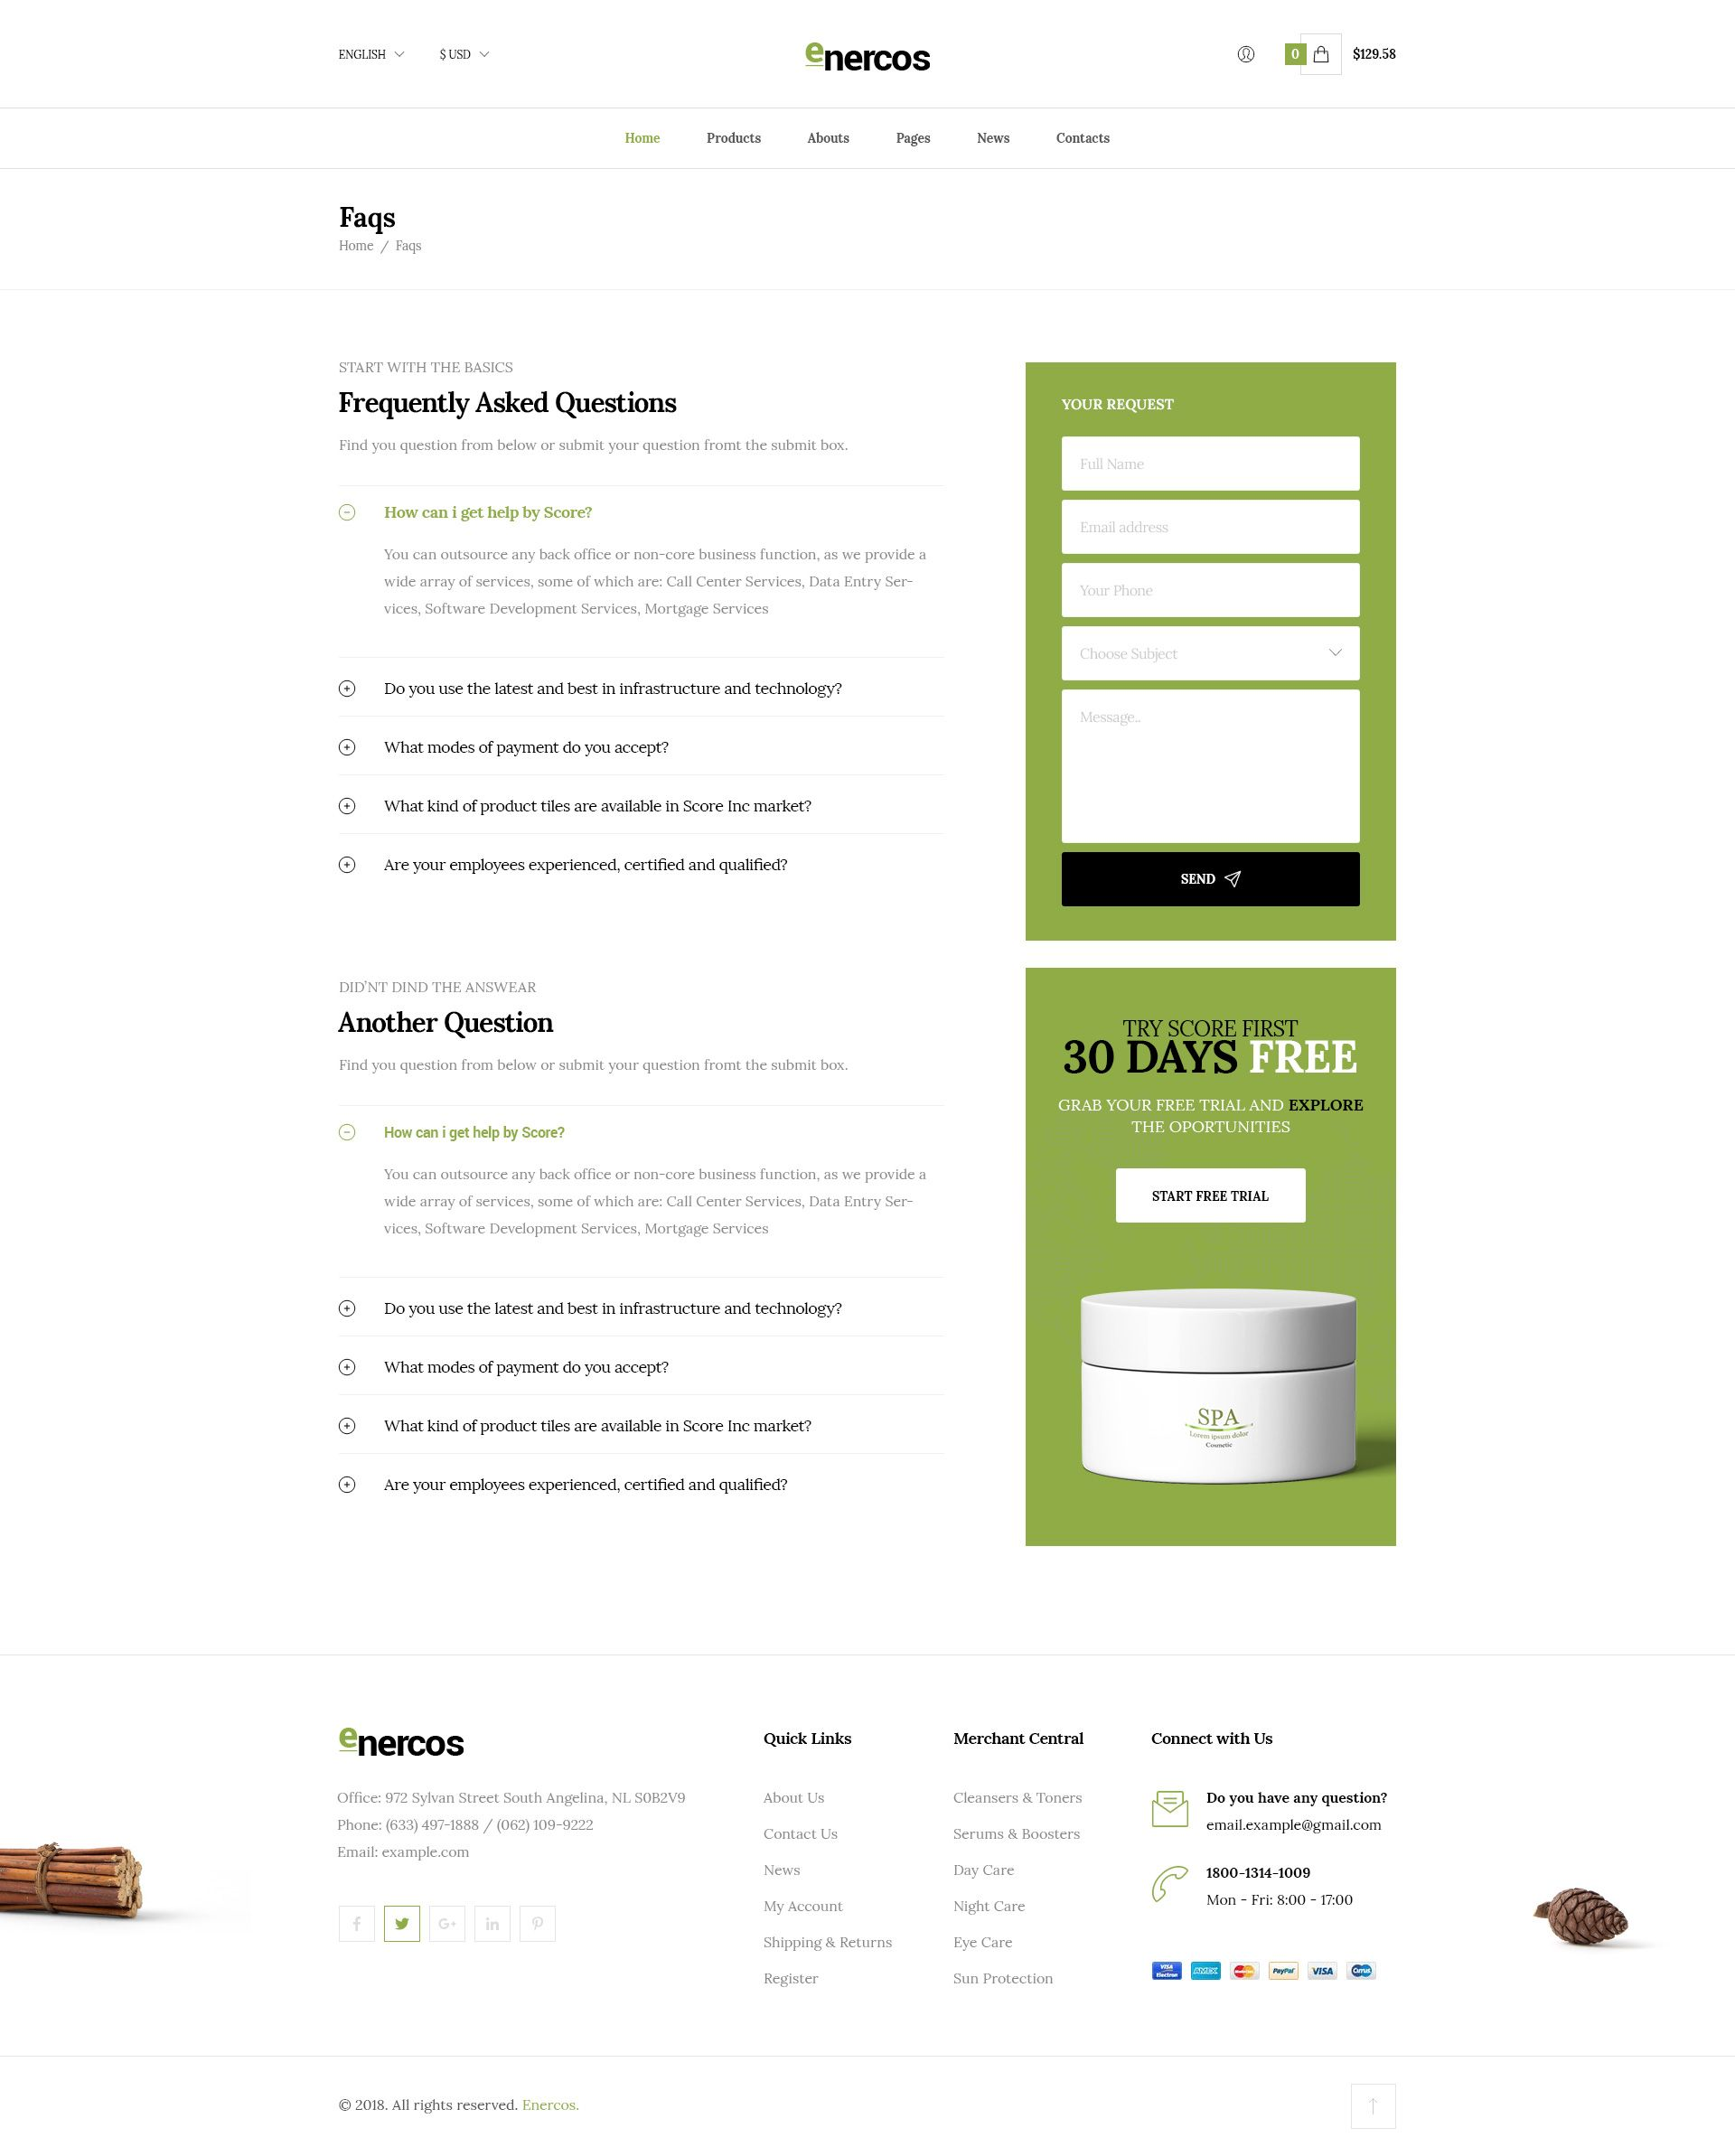 Enercos - Single Product eCommerce HTML5 Template Screenshot 10